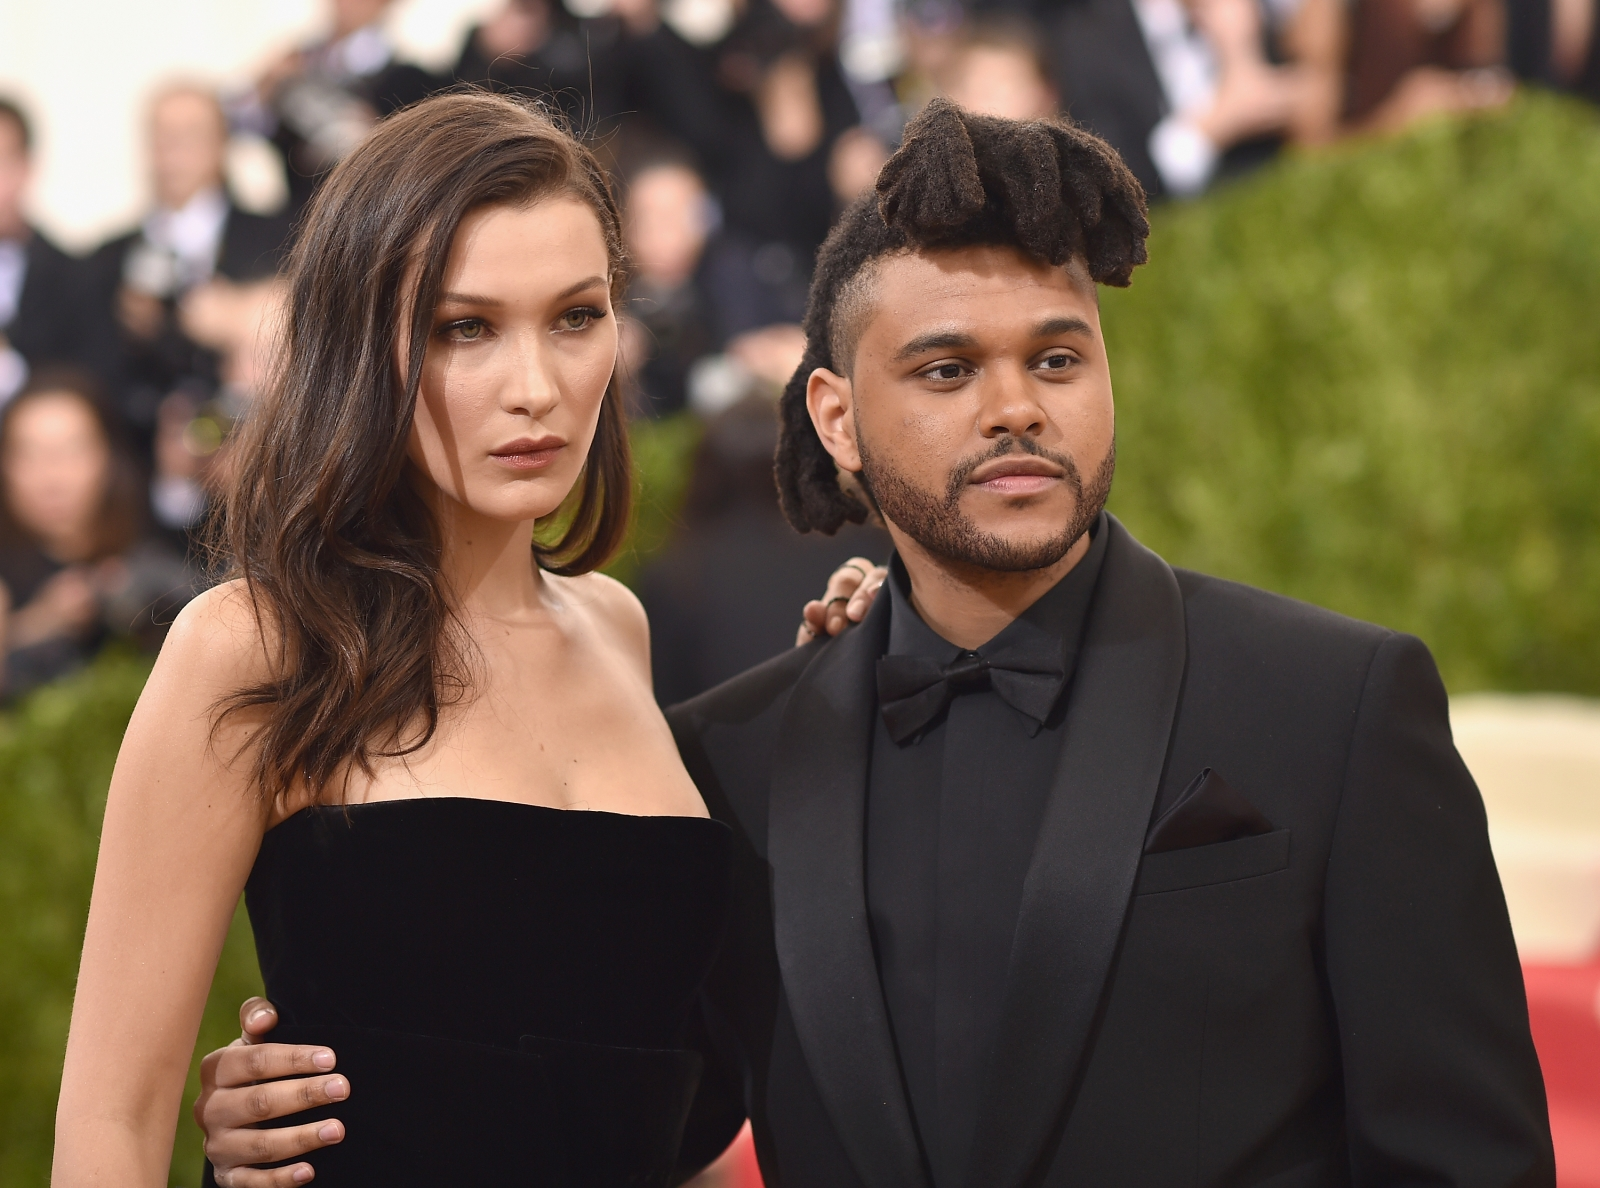 The Weeknd's back in touch with Bella Hadid